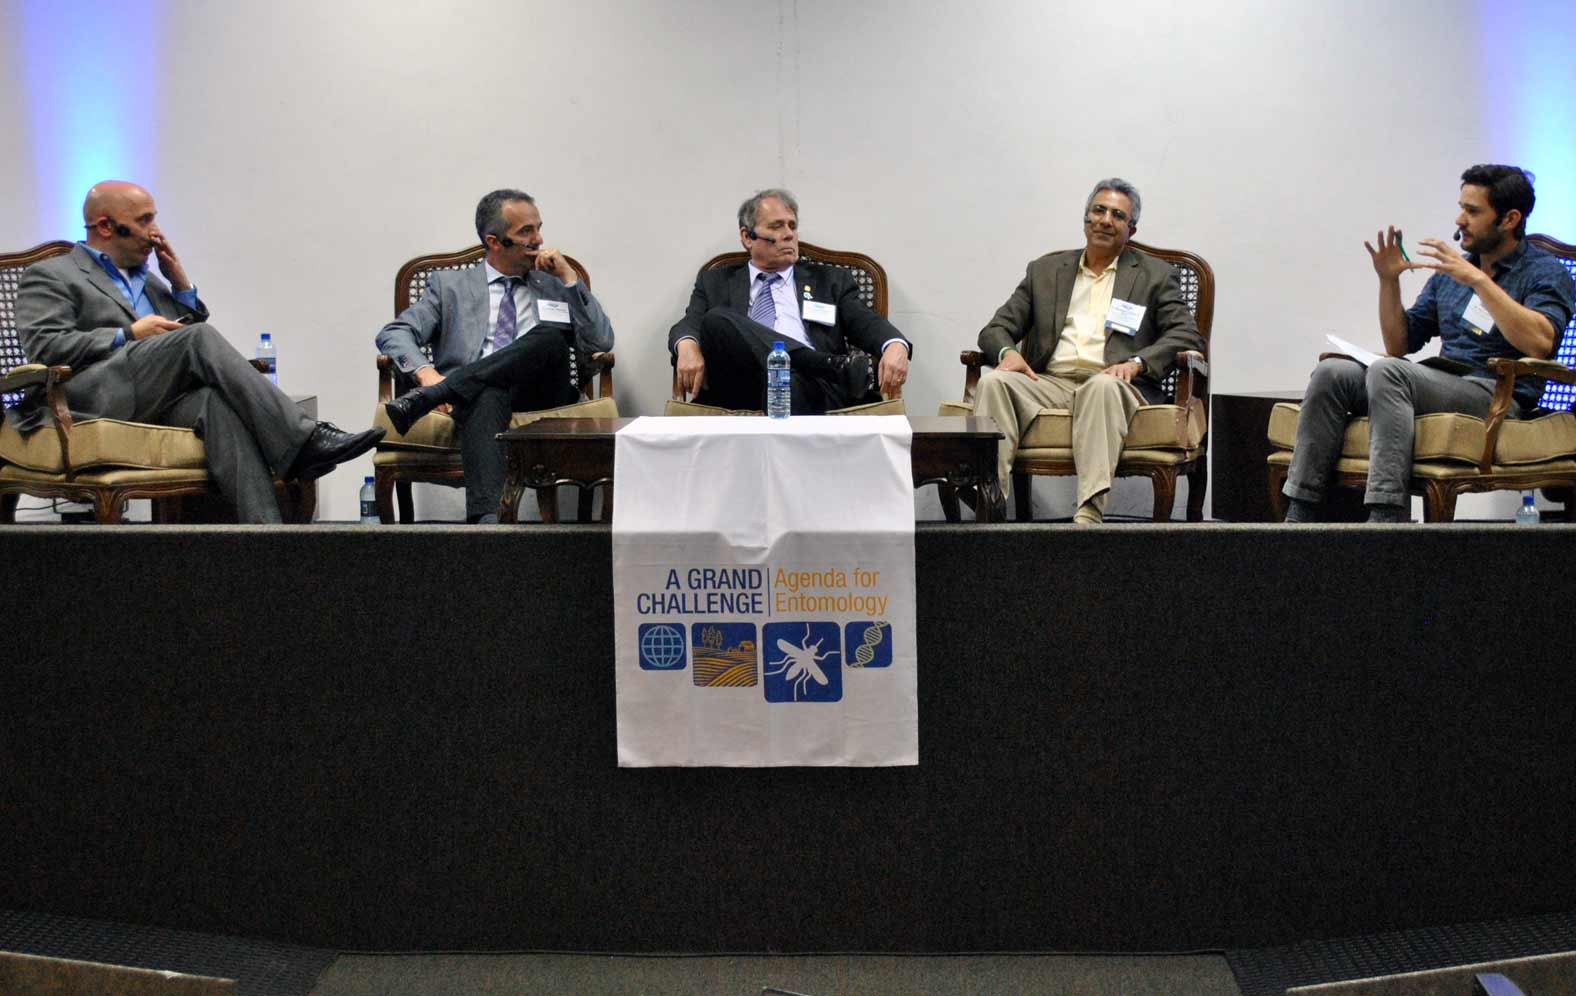 Phil Torres (right) moderates a panel with (from left to right) Chris Stelzig, Luciano Moreira, Grayson Brown, and Mustapha Debboun.